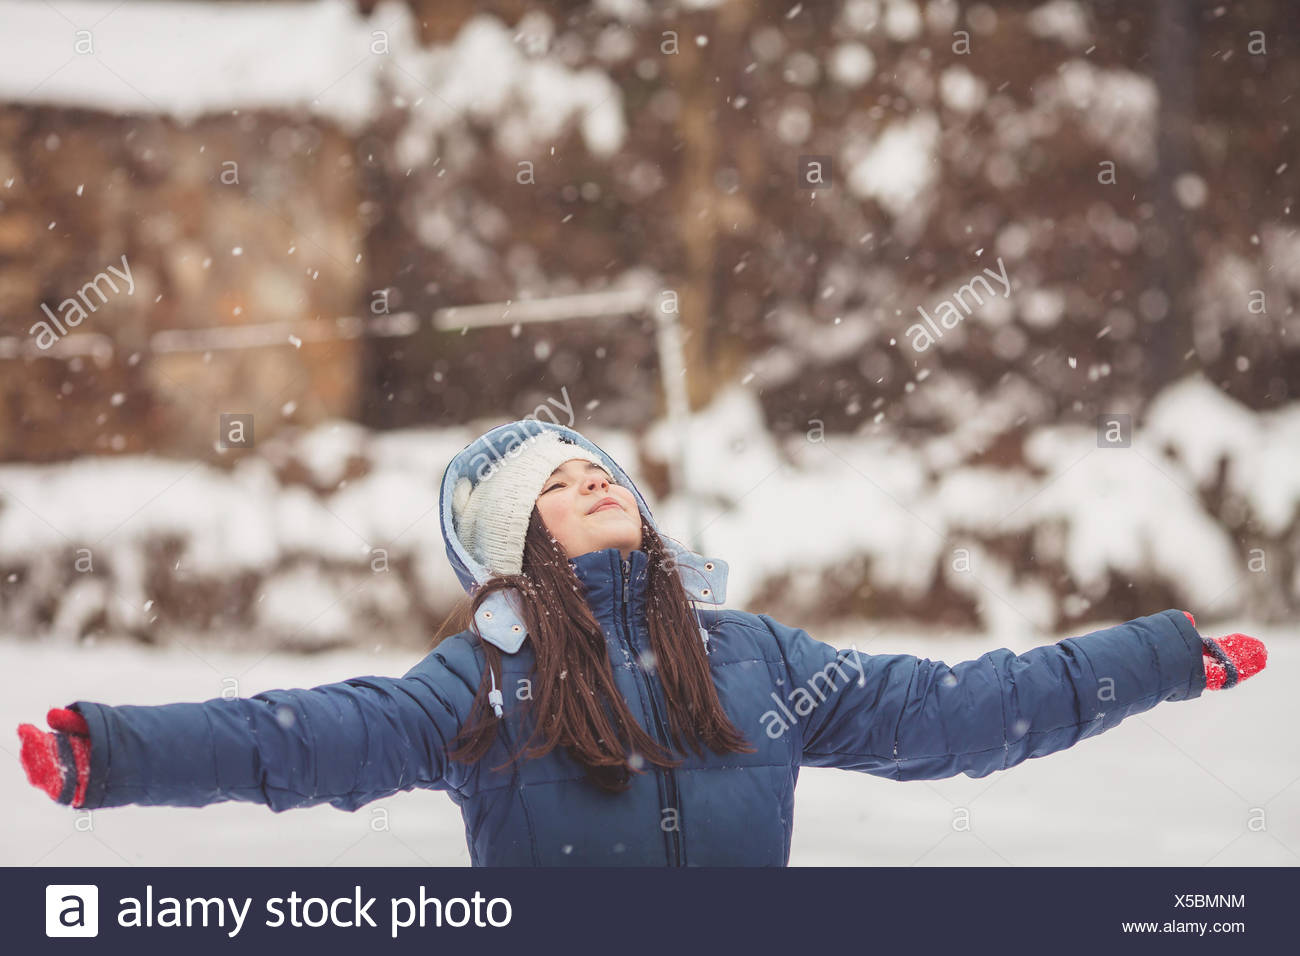 Girl standing in the snow looking up at the sky with outstretched arms - Stock Image